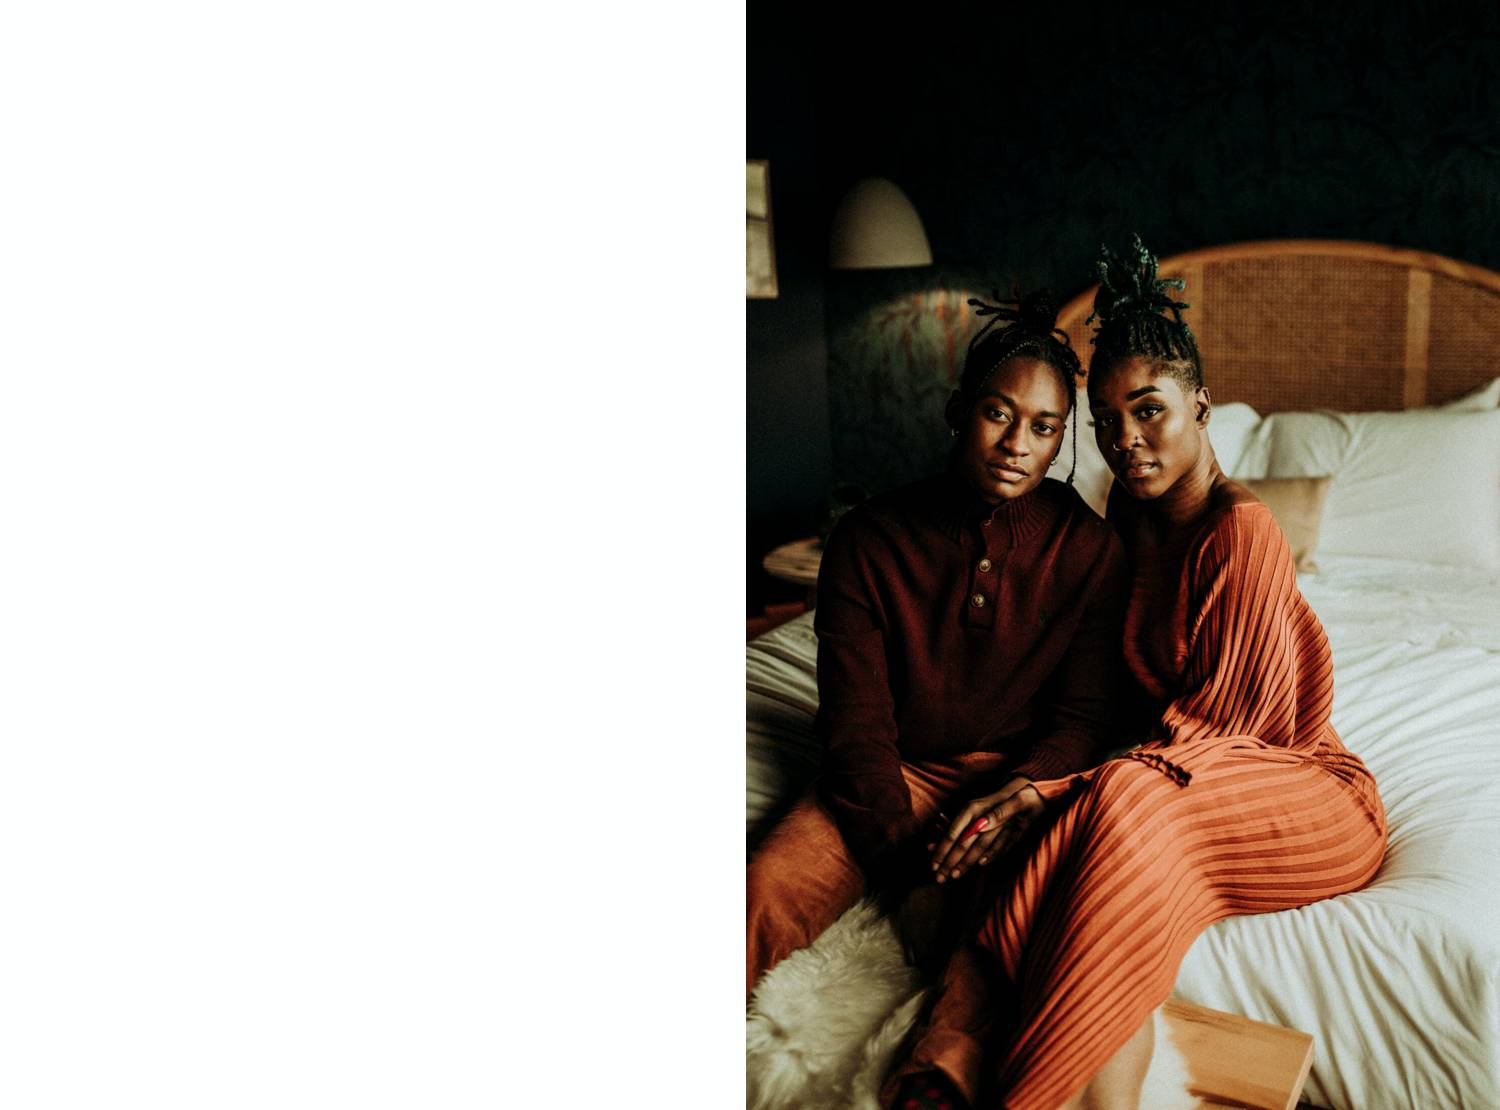 Photo: Fernweh & Fair's portrait of two Black people sitting close together on a cozy bed, gazing solemnly into the camera.